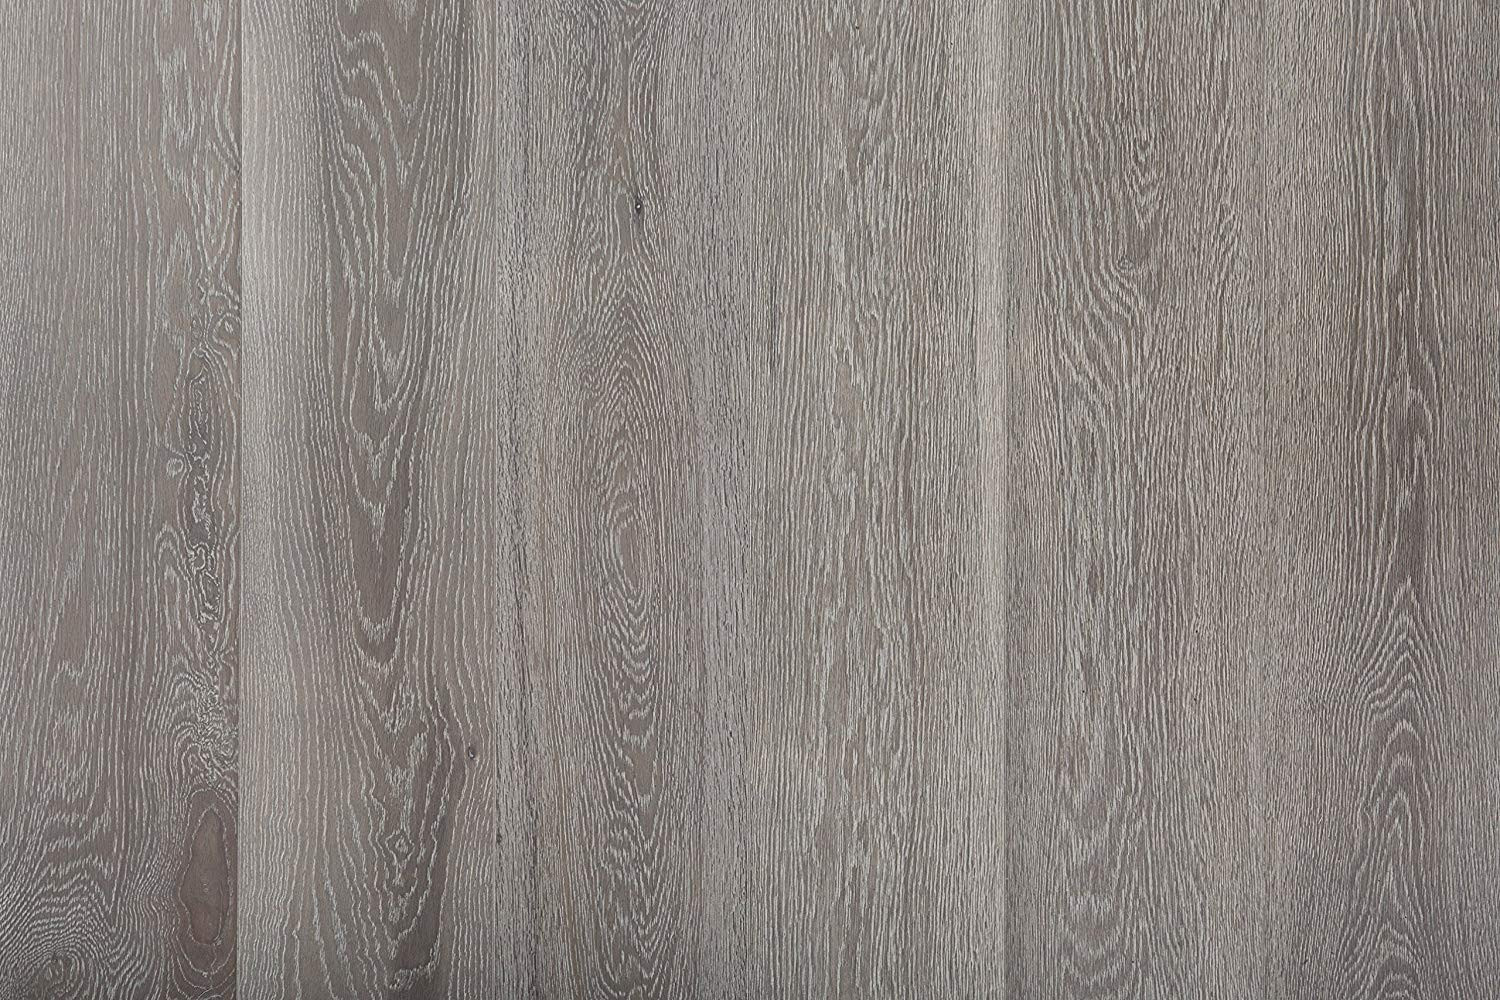 best quality engineered hardwood flooring of roanoke european oak wood flooring durable strong wear layer inside roanoke european oak wood flooring durable strong wear layer engineered hardwood floor sample by gohaus amazon com